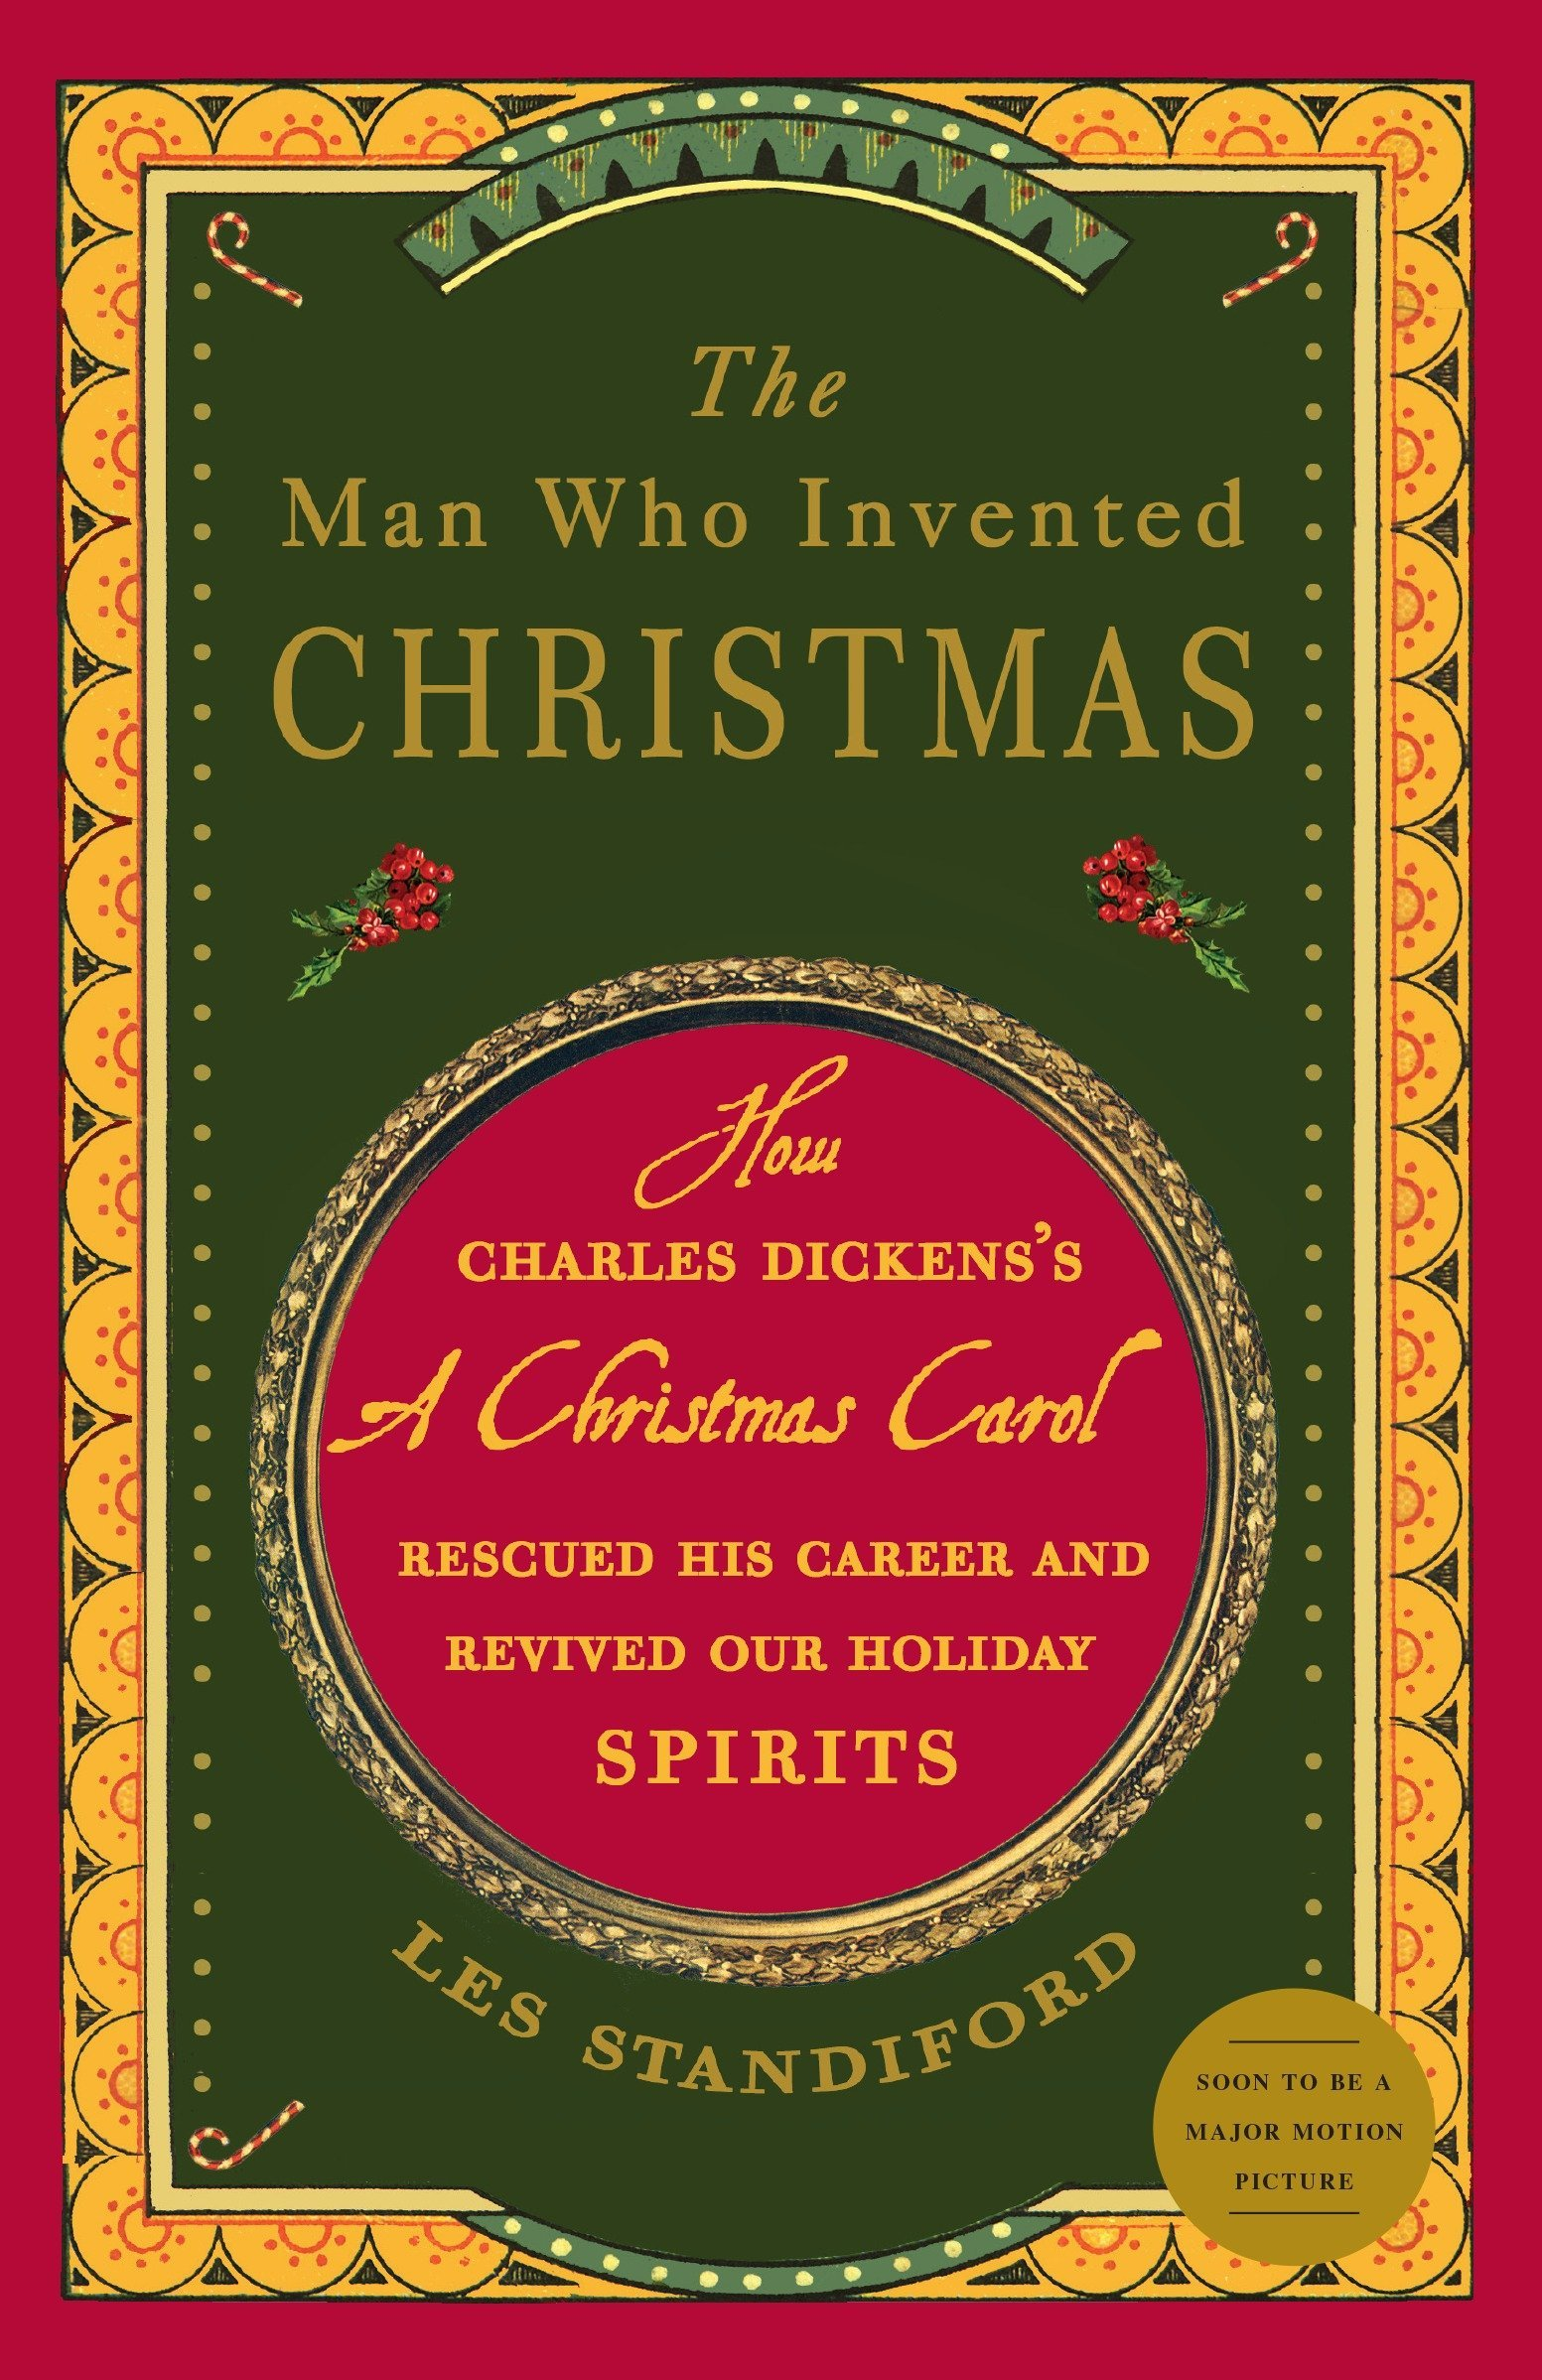 When Was A Christmas Carol Written.The Man Who Invented Christmas How Charles Dickens S A